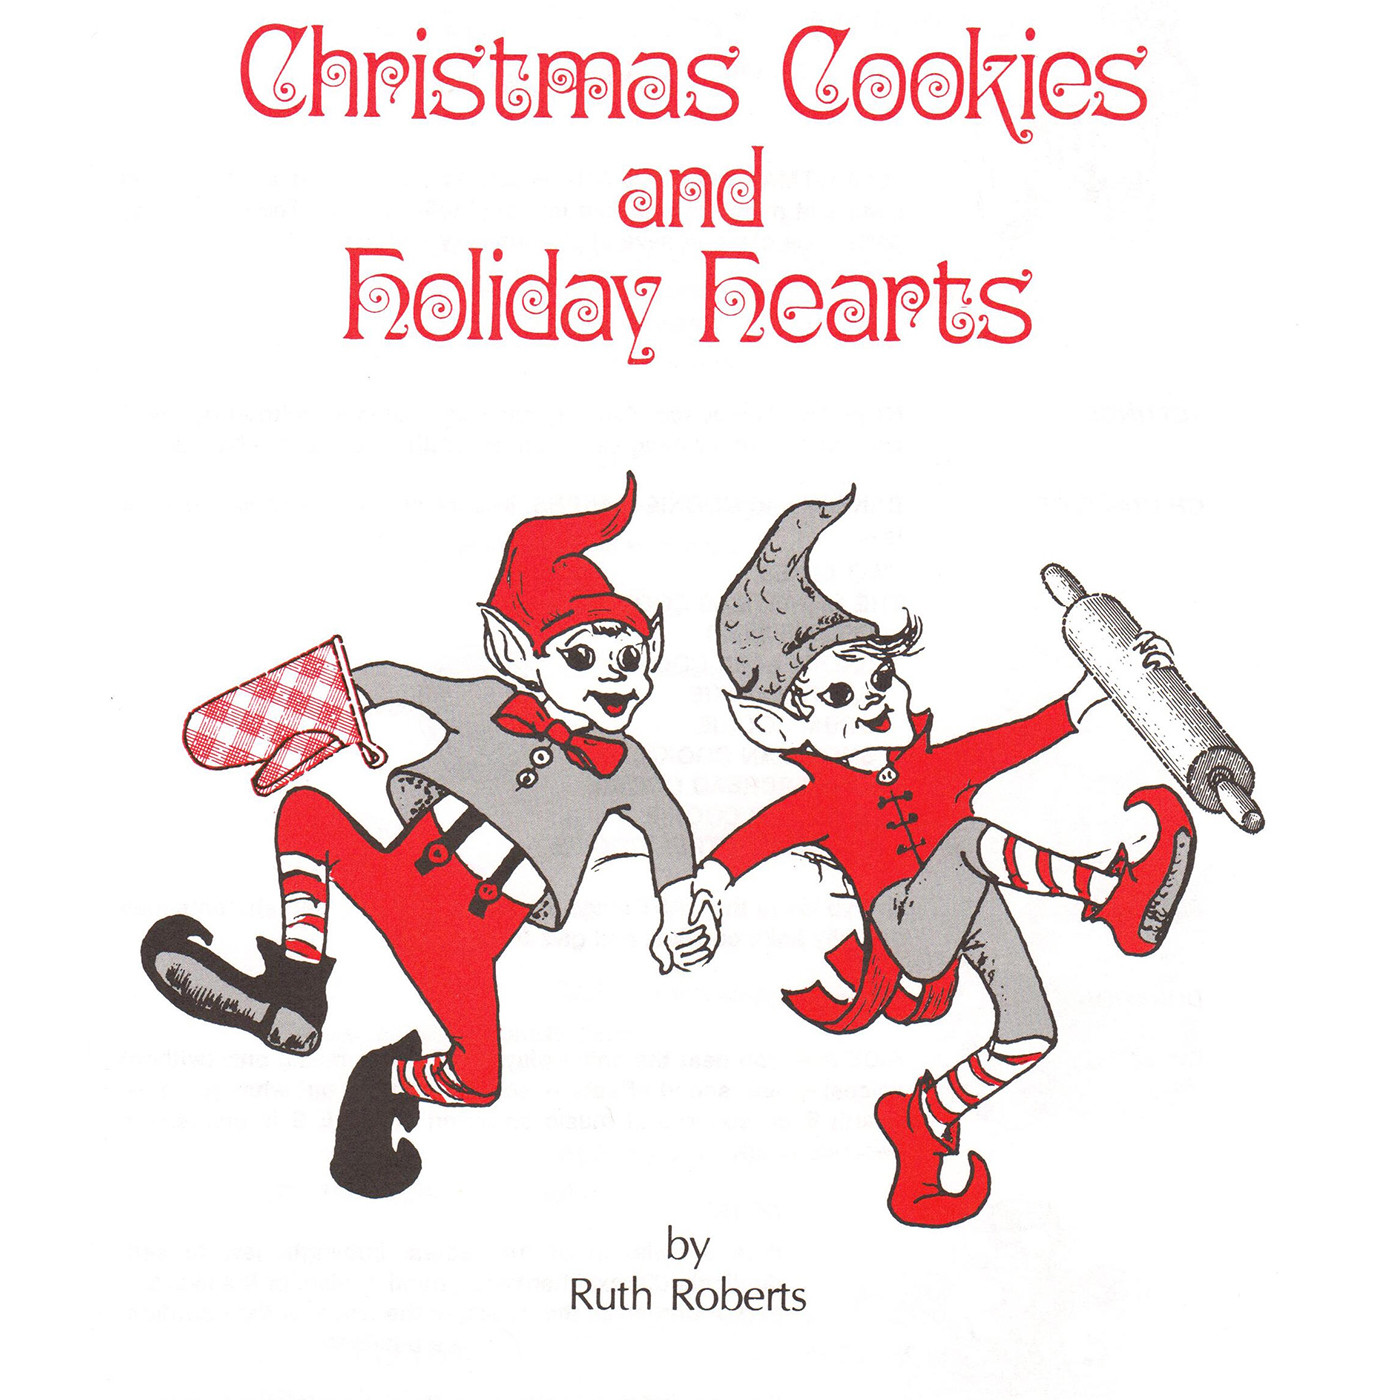 Christmas Cookies and Holiday Hearts - CD Kit